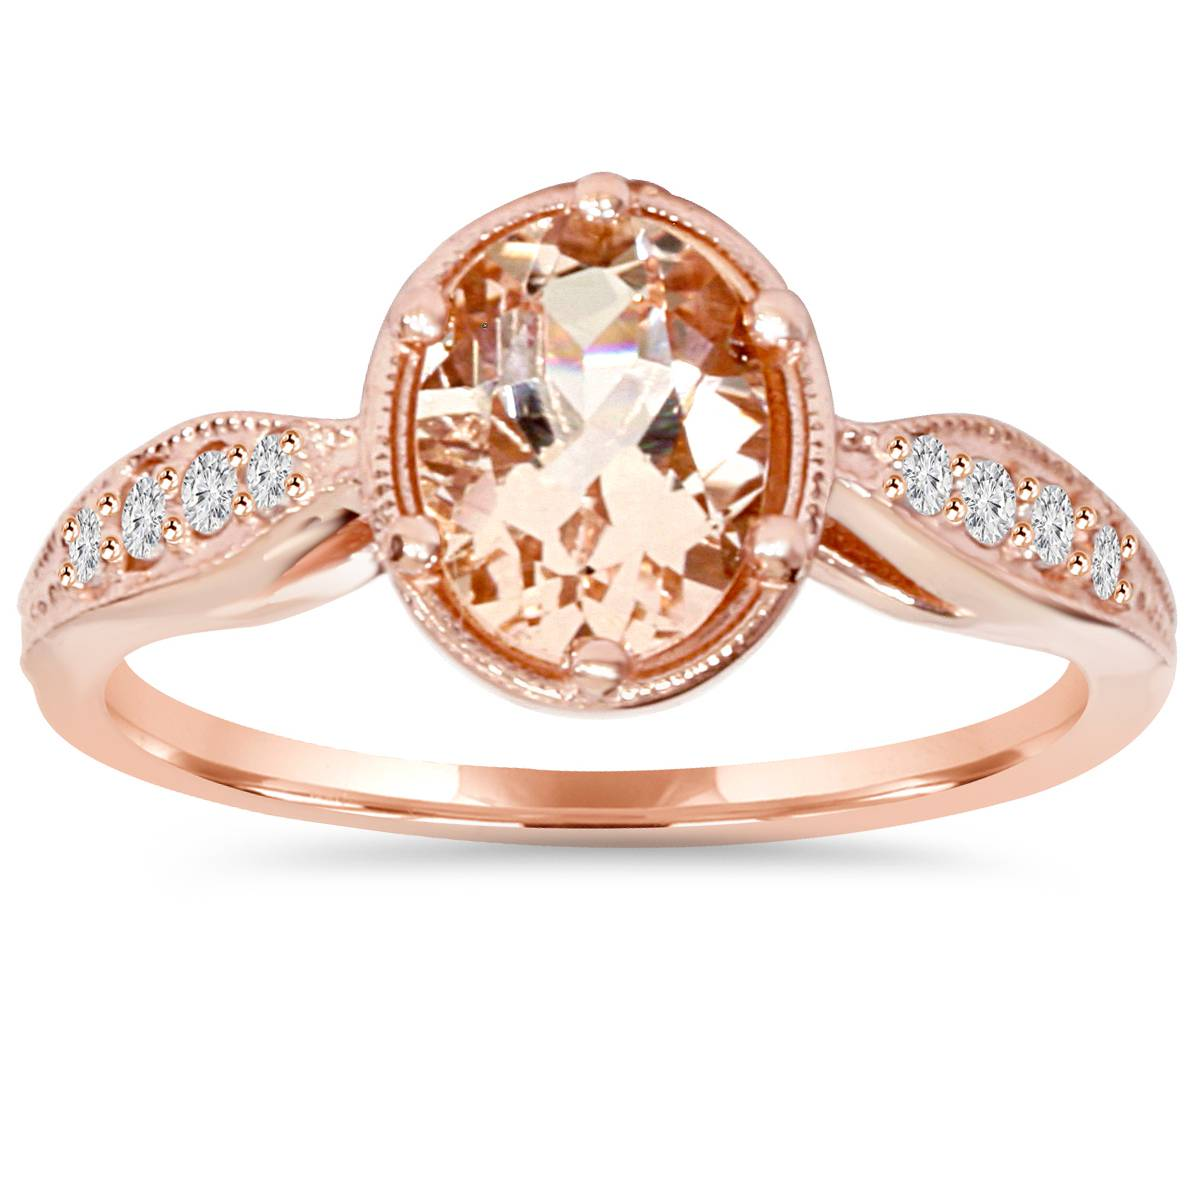 1ct vintage morganite diamond ring 14k rose gold ebay. Black Bedroom Furniture Sets. Home Design Ideas